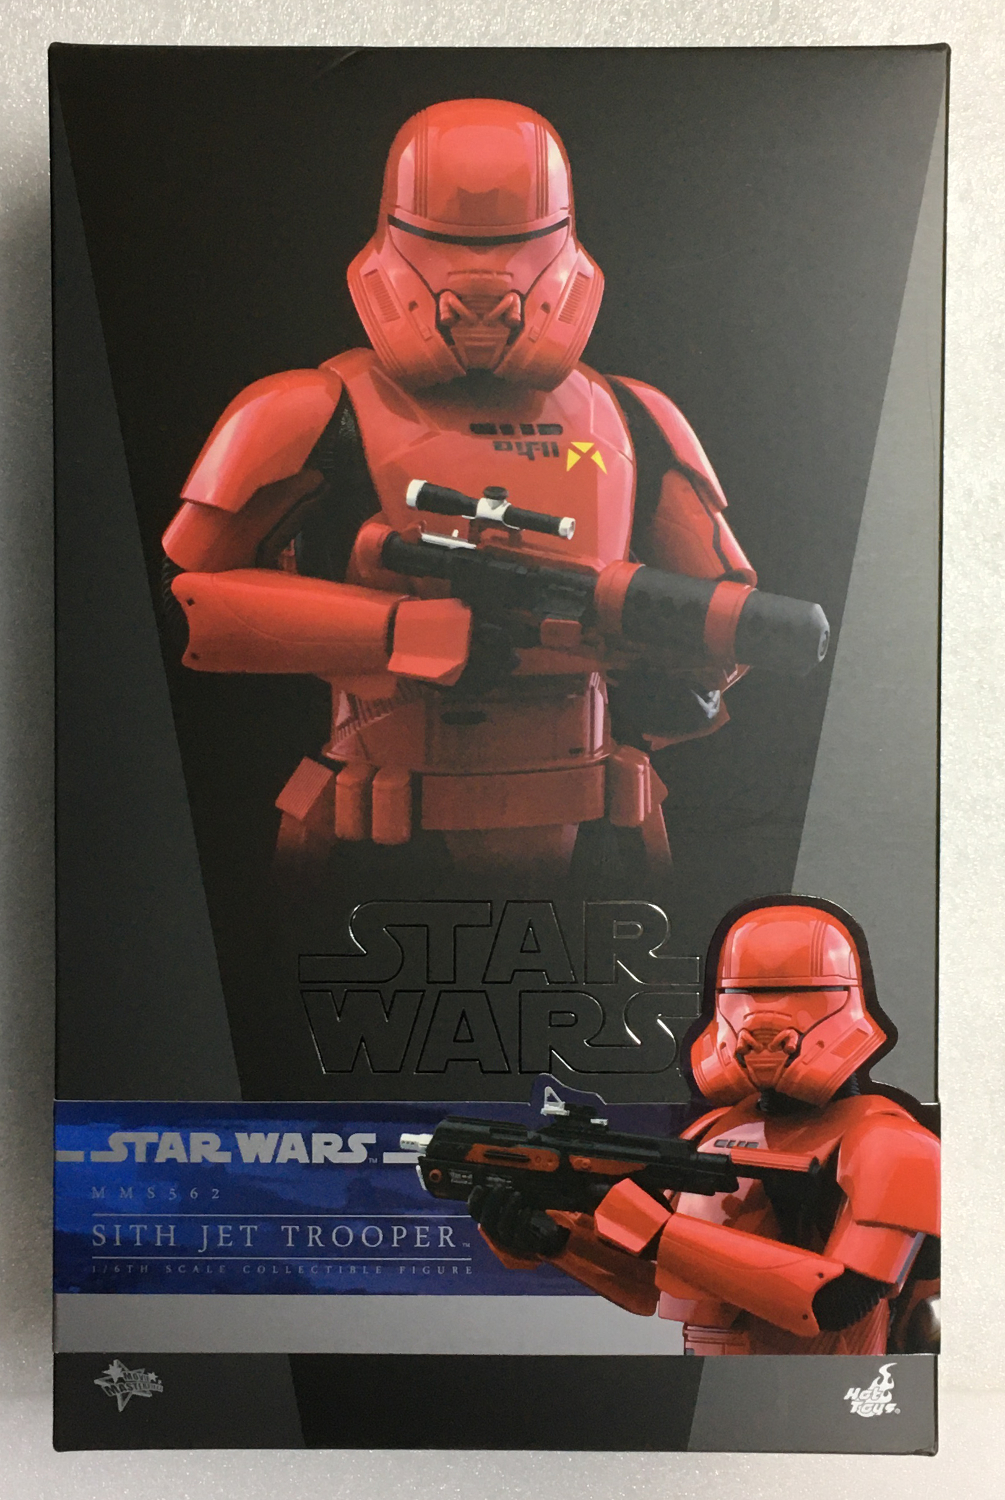 hot toys star wars sith jet trooper 1:6 scale figure 1